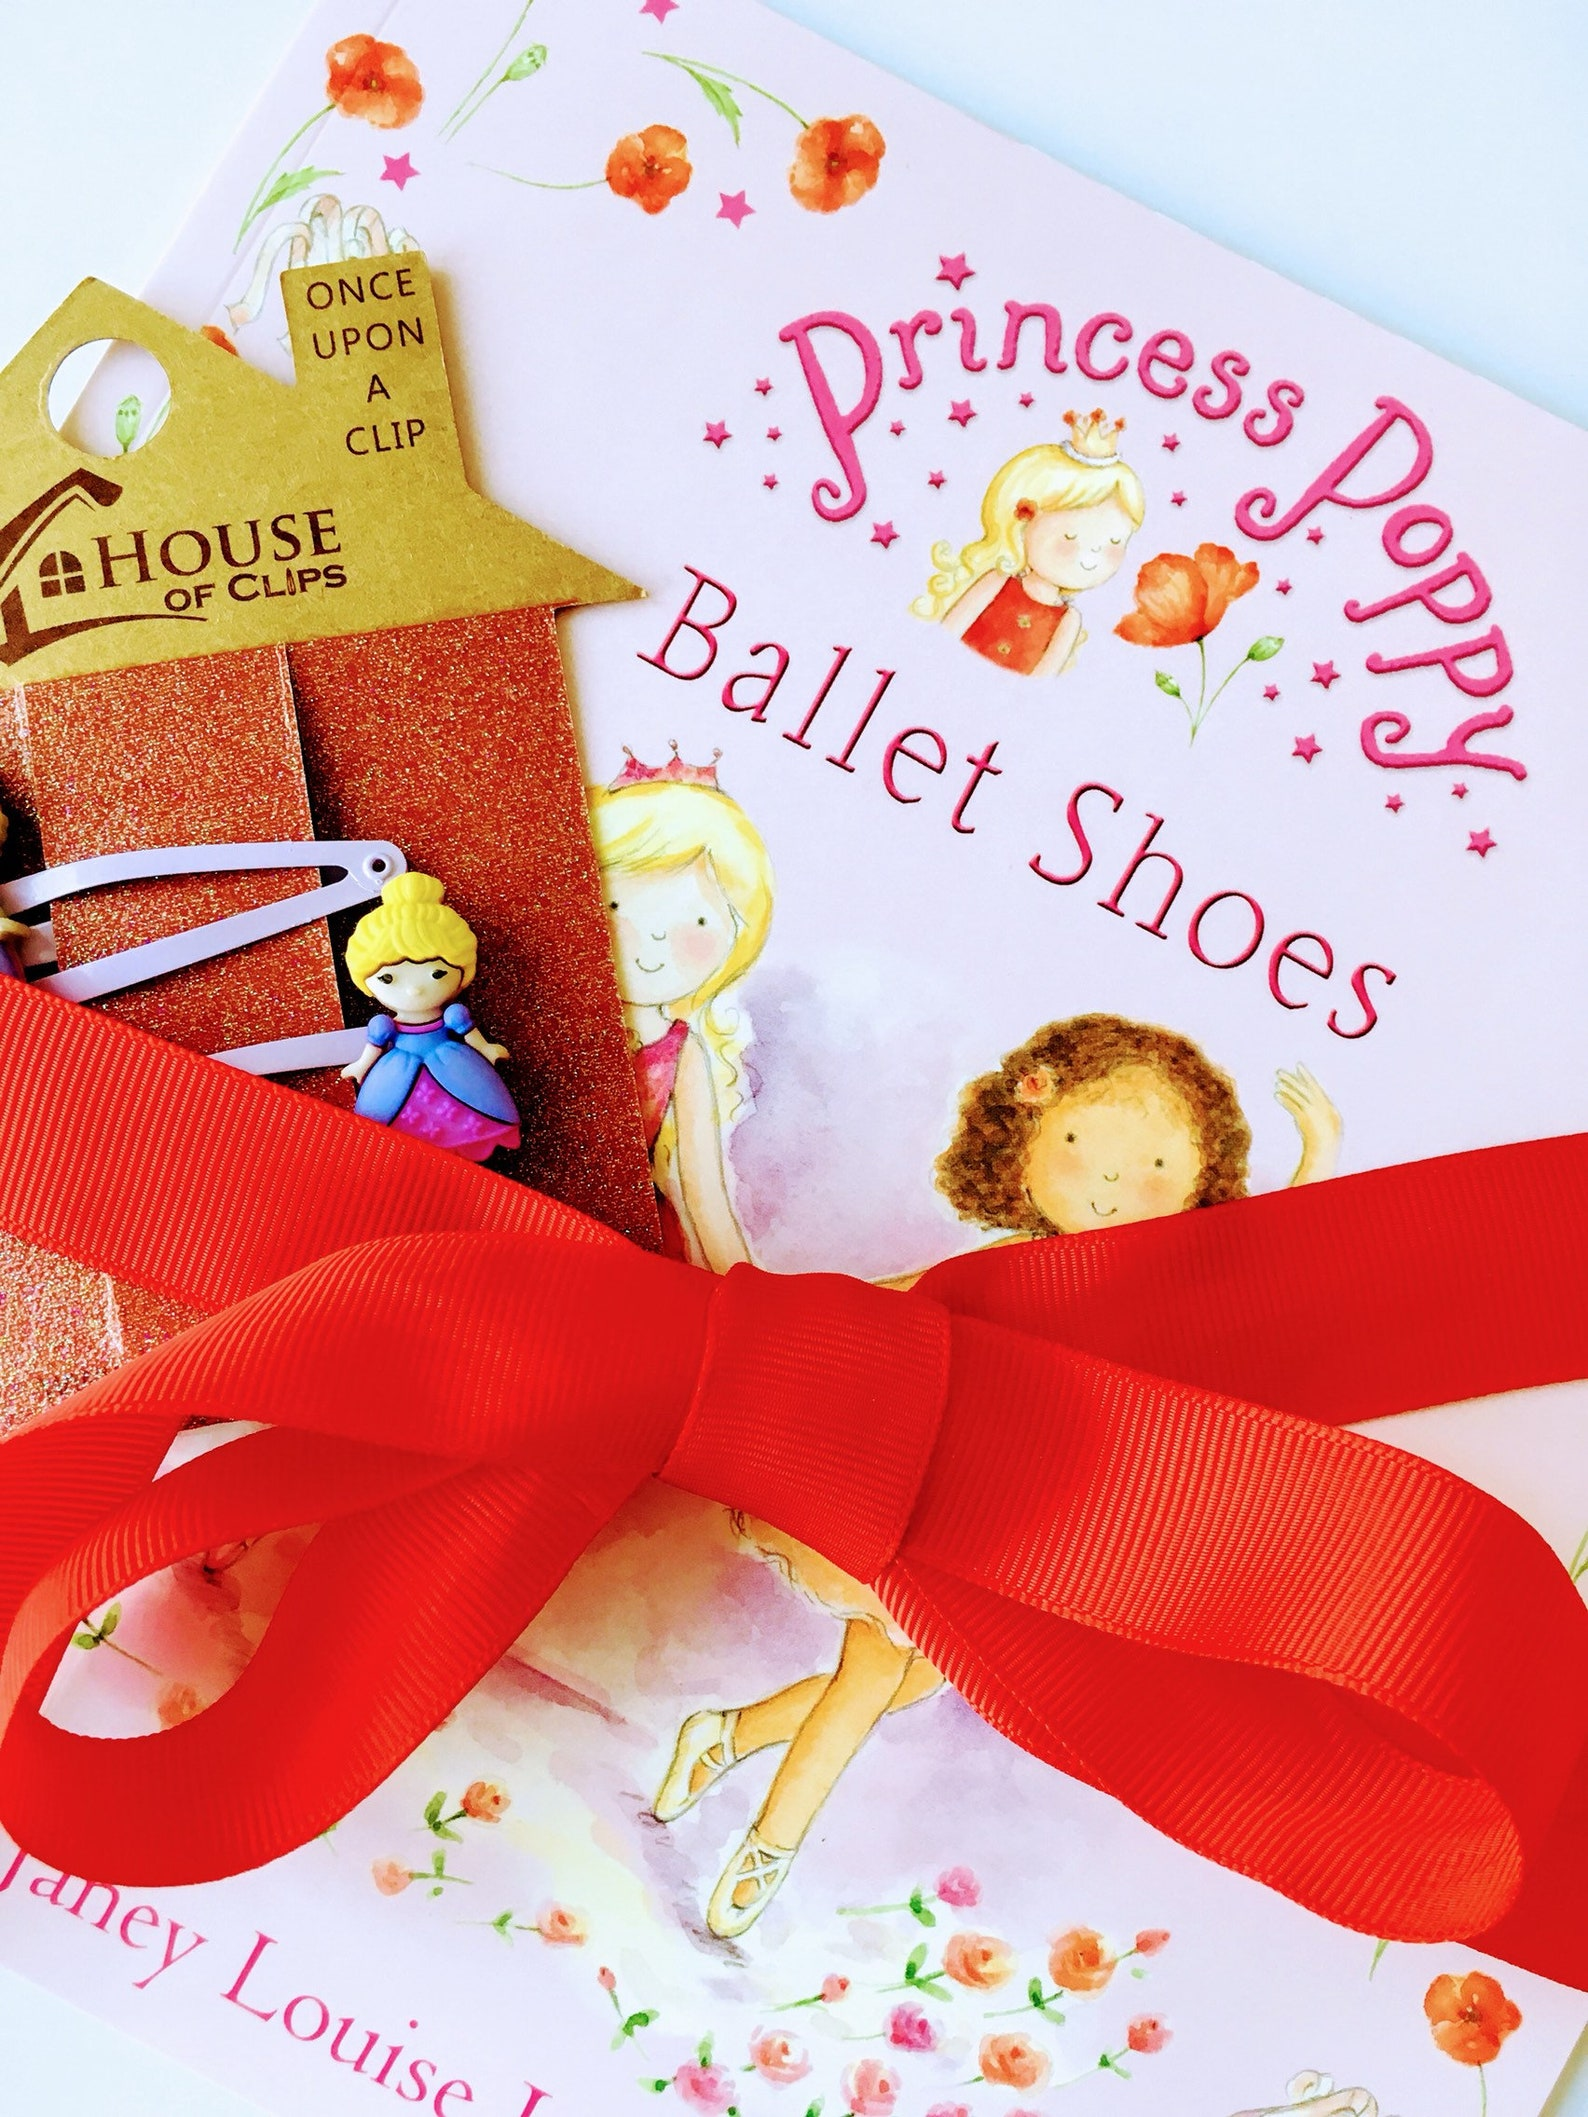 hair clips & books, princess poppy ballet shoes, popular girl gifts, snap clips , gift for girls